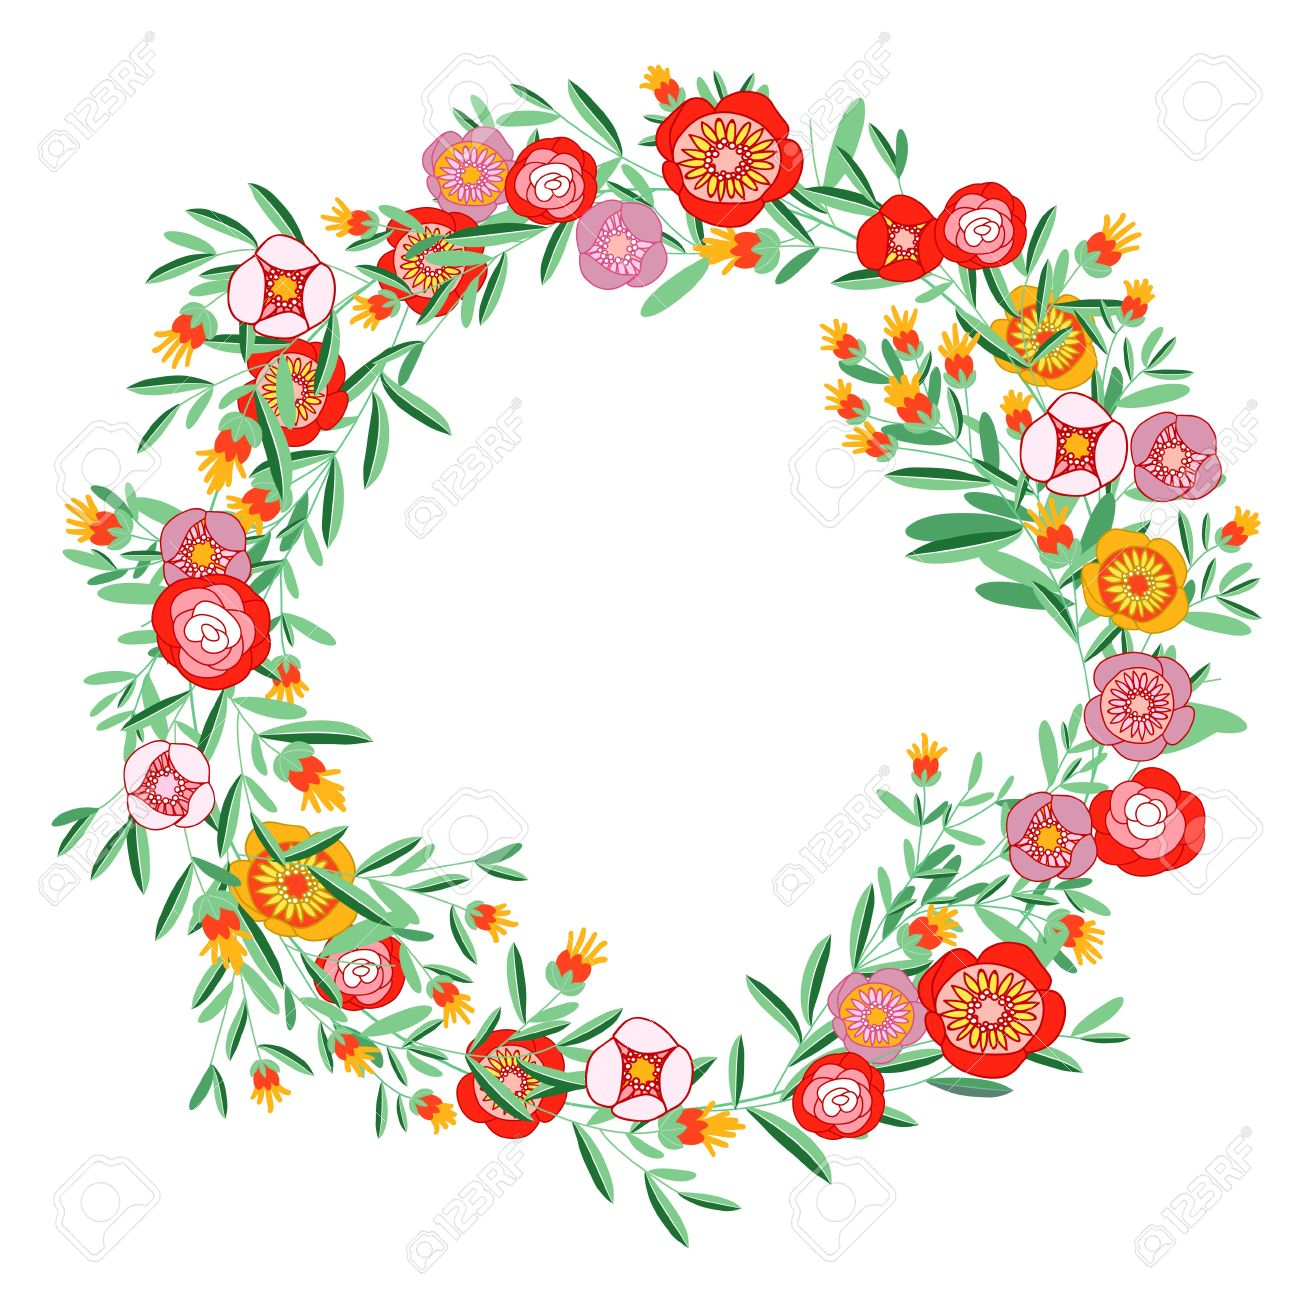 Flower wreath clipart